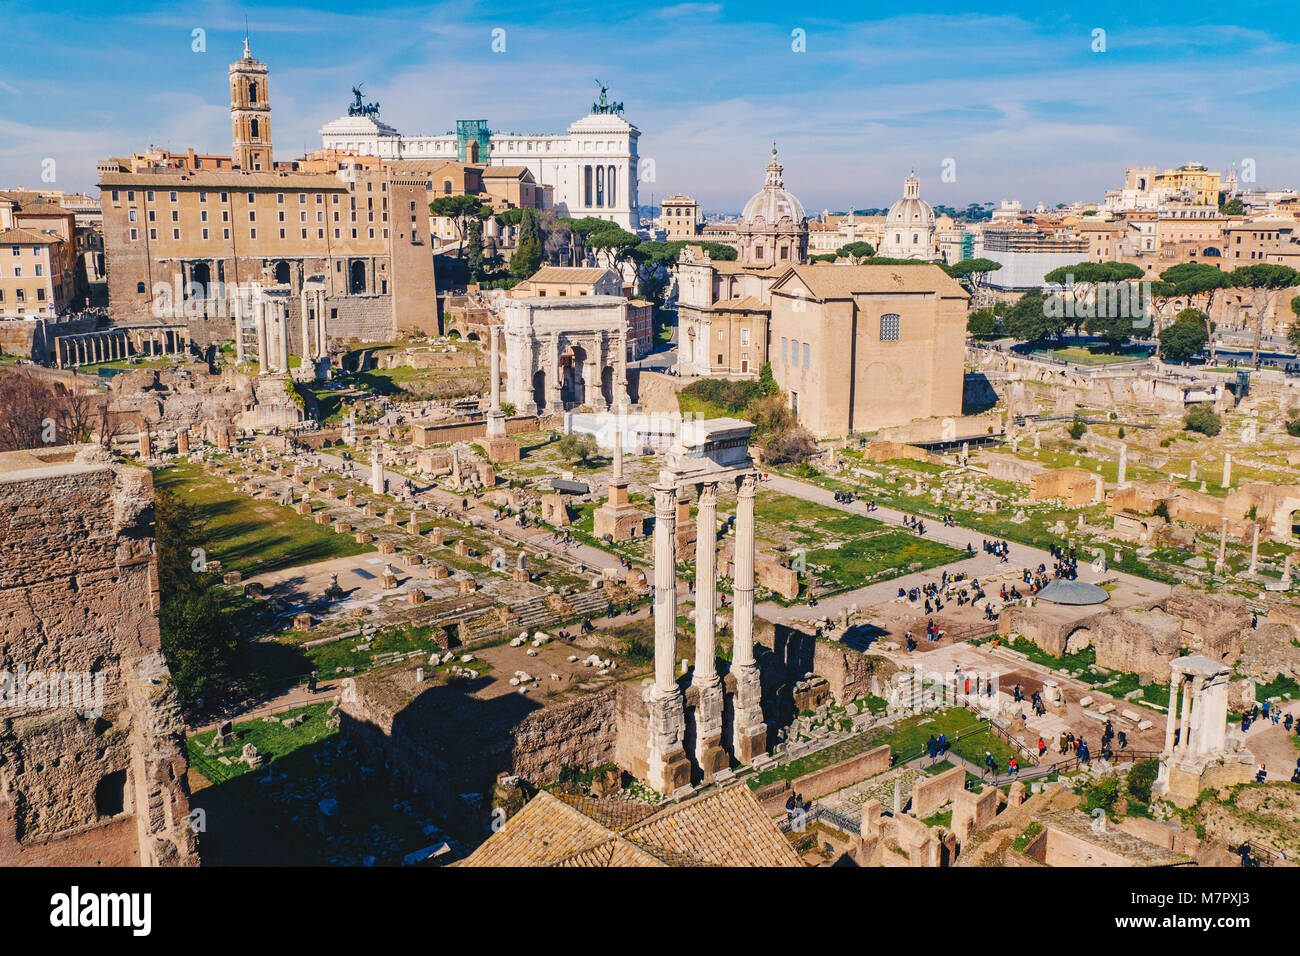 Panorama of the Roman Forum (Foro Romano) and Roman ruins as seen from the Palatine Hill, Roma, Italy - Stock Image